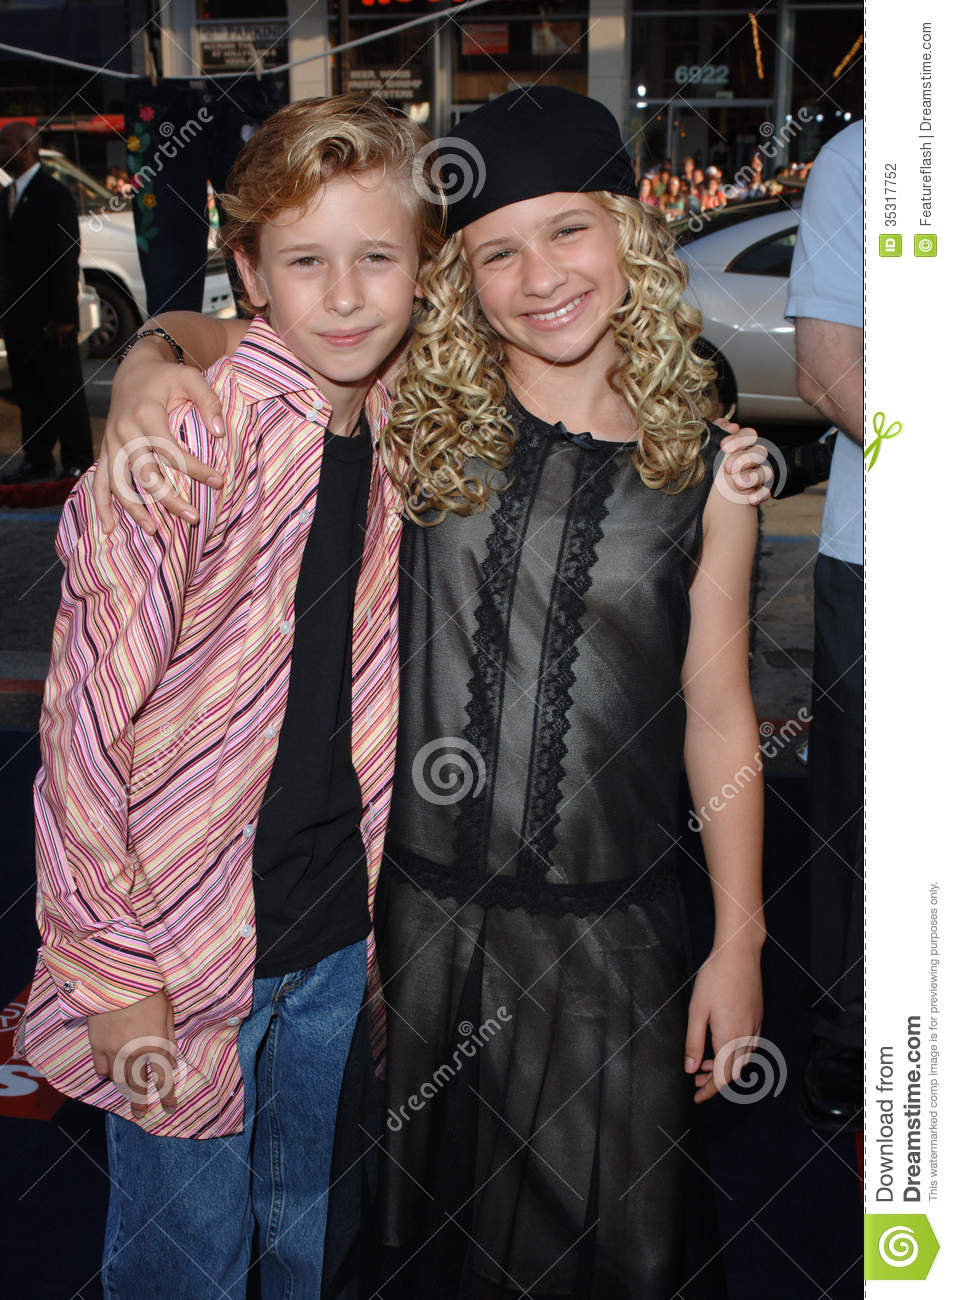 Desreta Jackson nudes (62 photo), Sexy, Sideboobs, Twitter, underwear 2018